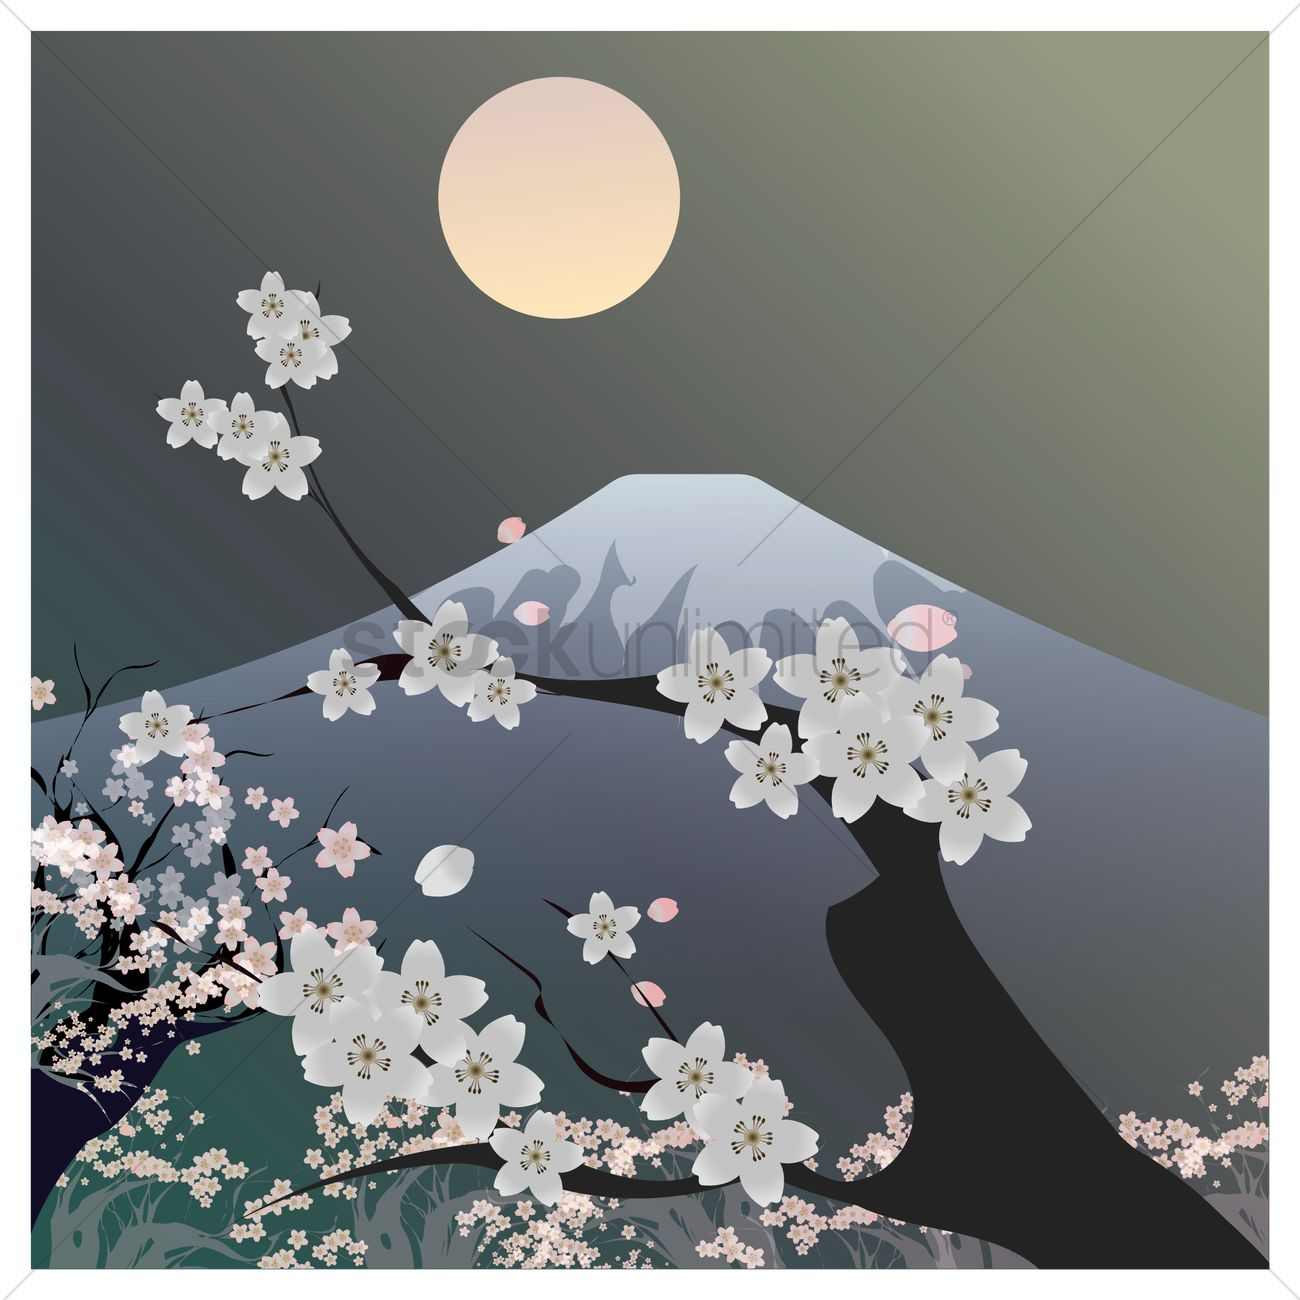 Mount Fuji Kyoto And Cherry Blossom Vector Image 1592553